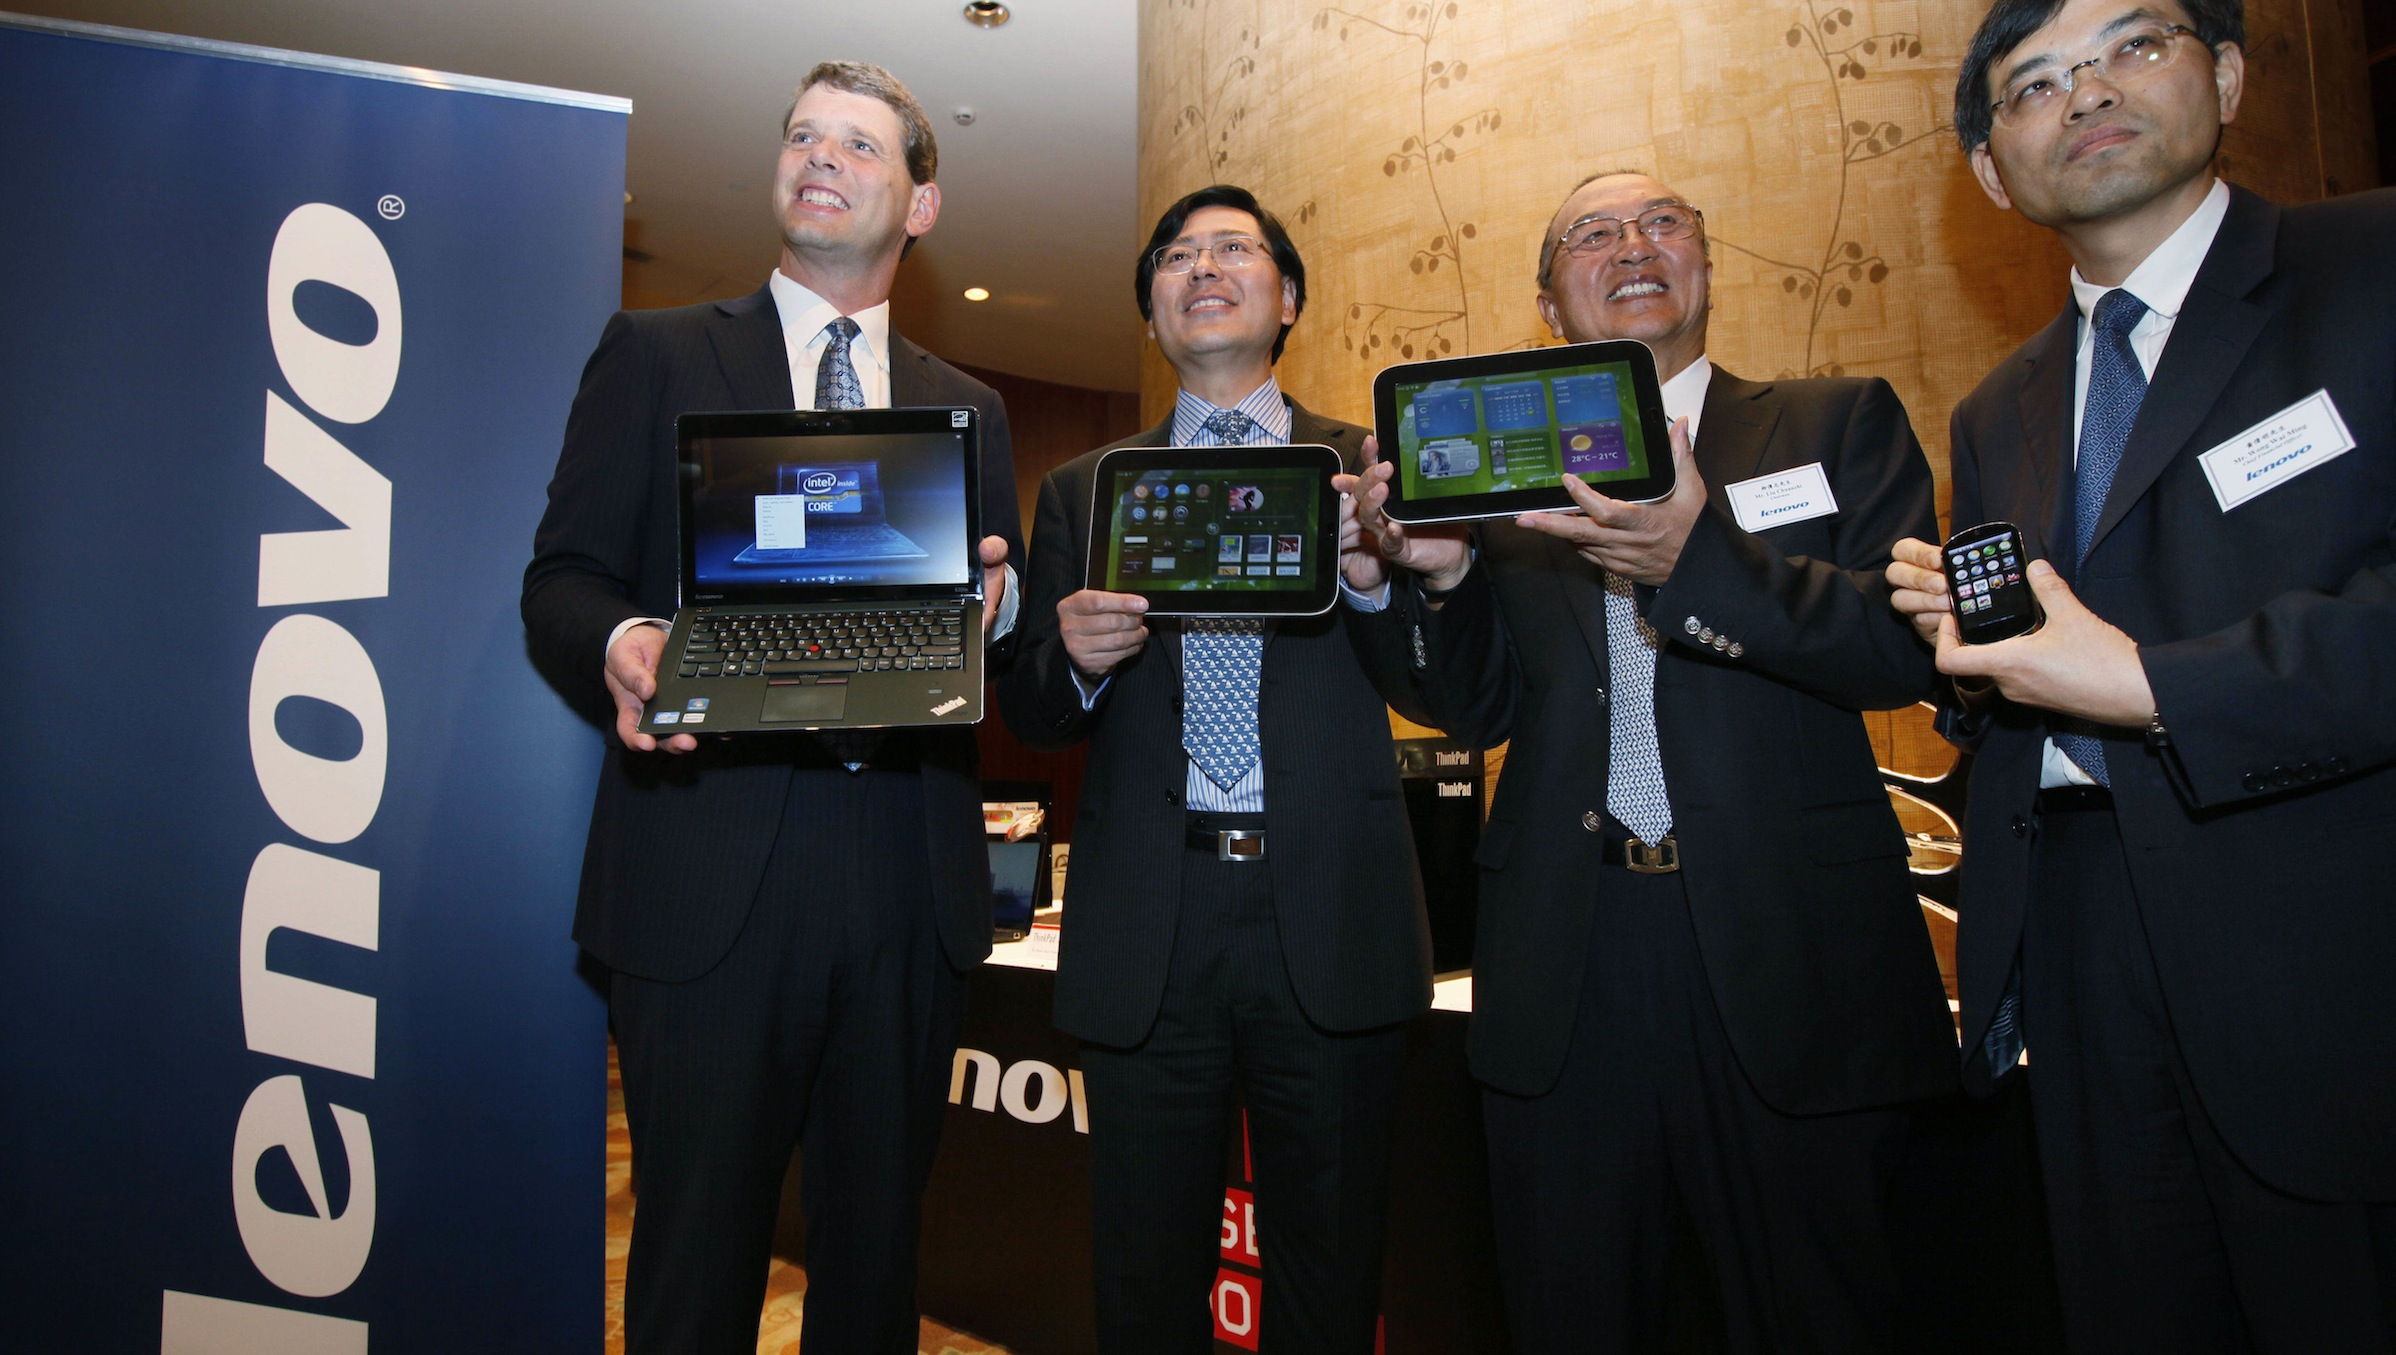 From left, Rory Read, President and Chief Operating Officer of Lenovo Group Limited, Yang Yuanqing, Chief Executive Officer, Liu Chuanzhi, Chairman of the board and Wong Wai Ming, Chief Financial Officer, show their company products before the company results announcement in Hong Kong Thursday, May 26, 2011. Lenovo Group, the fourth-largest personal computer maker, says its 2010 profit more than doubled as global demand rebounded. Lenovo said Thursday it earned $273 million last year, or $2.73 per share. Global sales rose 30 percent to $21.6 billion.  (AP Photo/Kin Cheung)